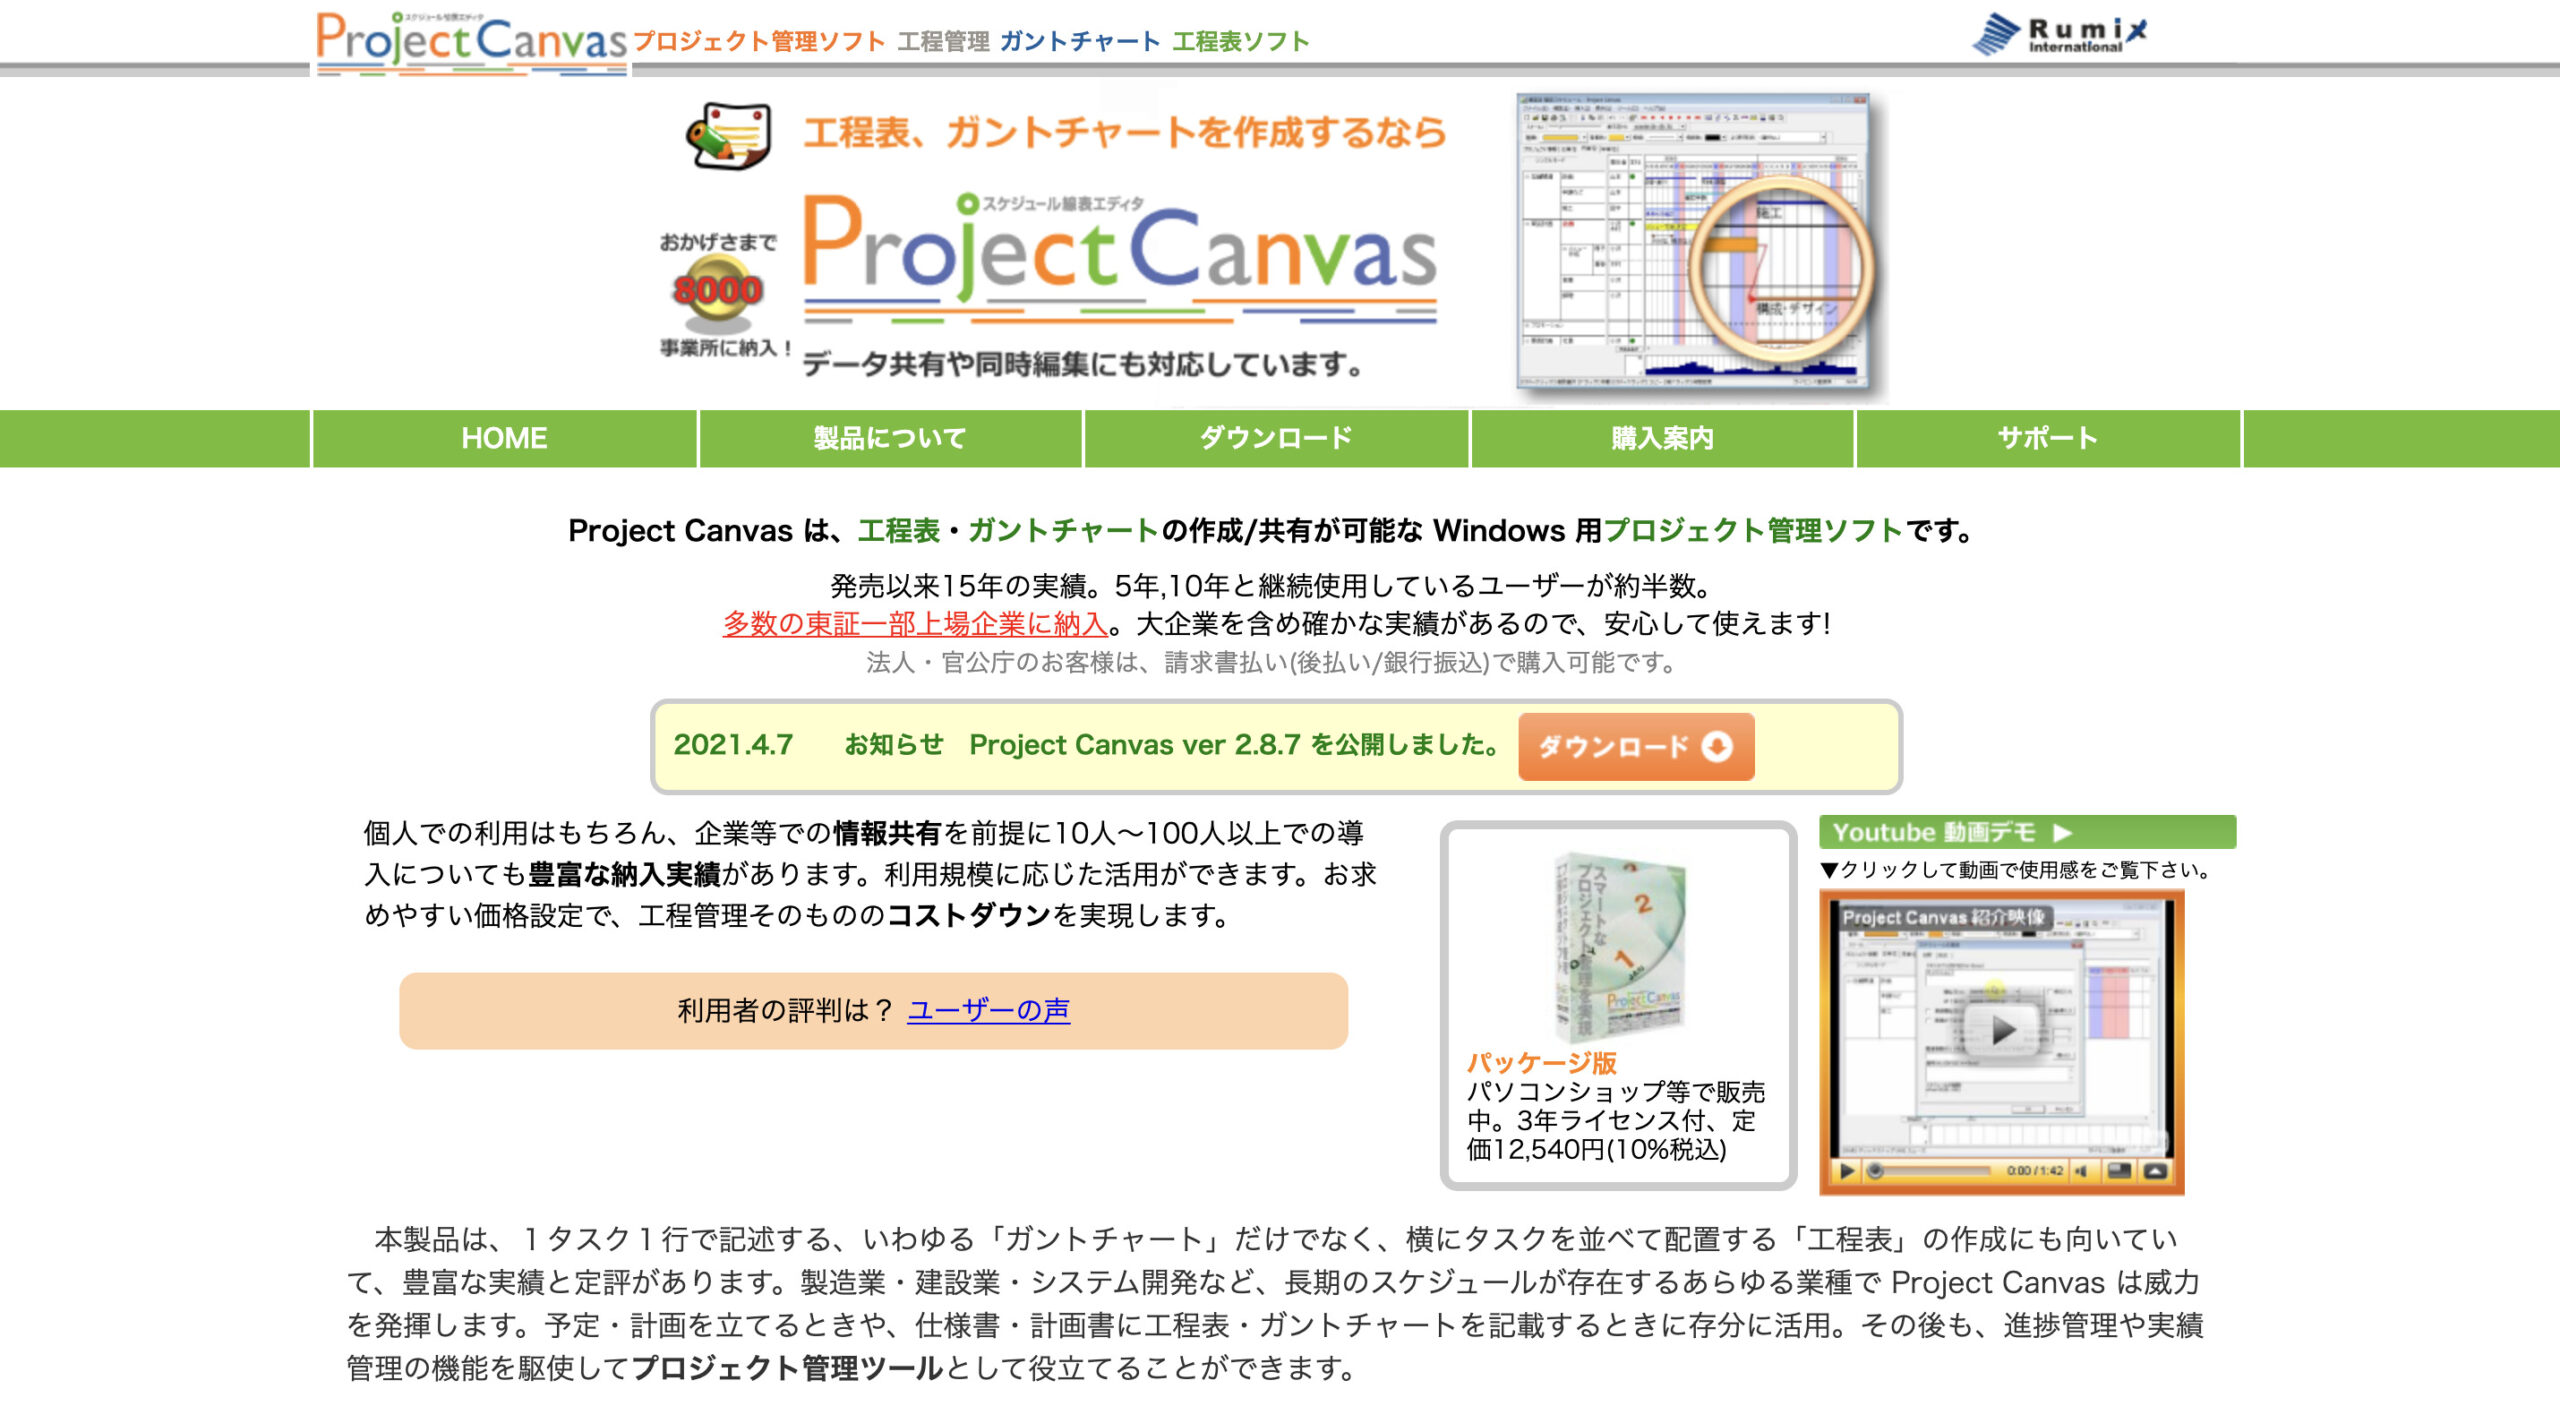 Project Canvas